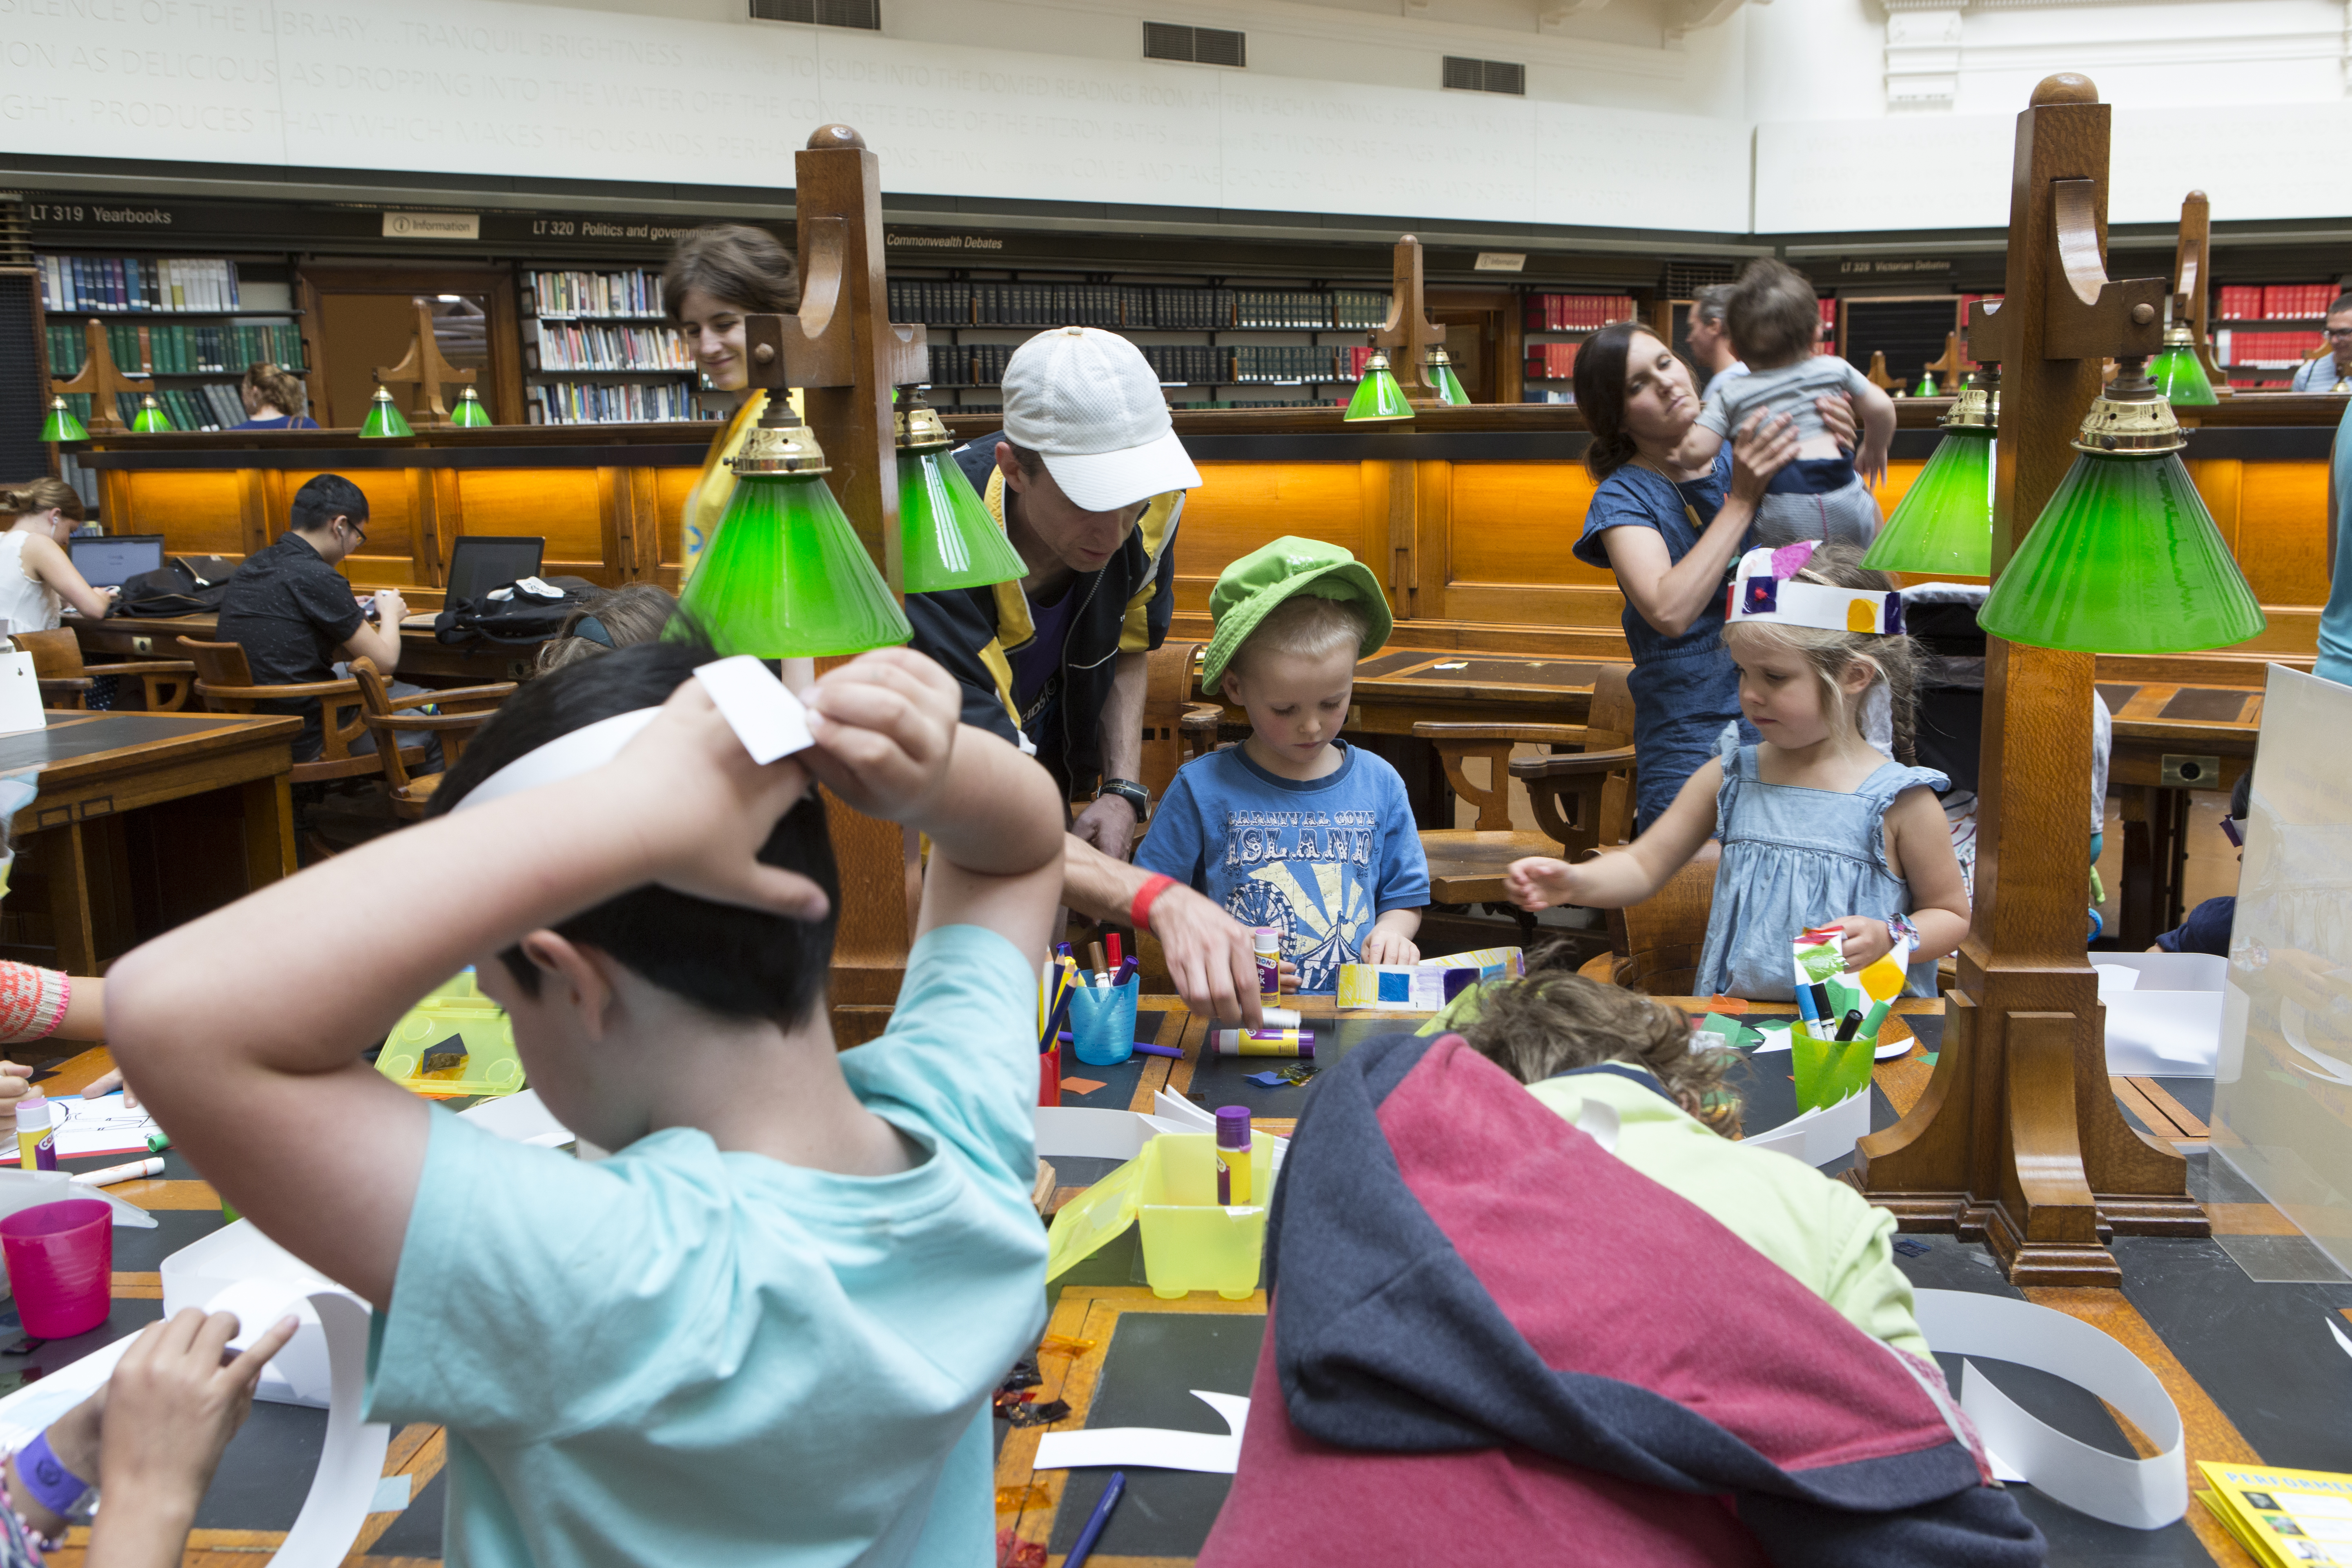 Image: Activities in the Dome Reading Room. (Teagan Glenane)